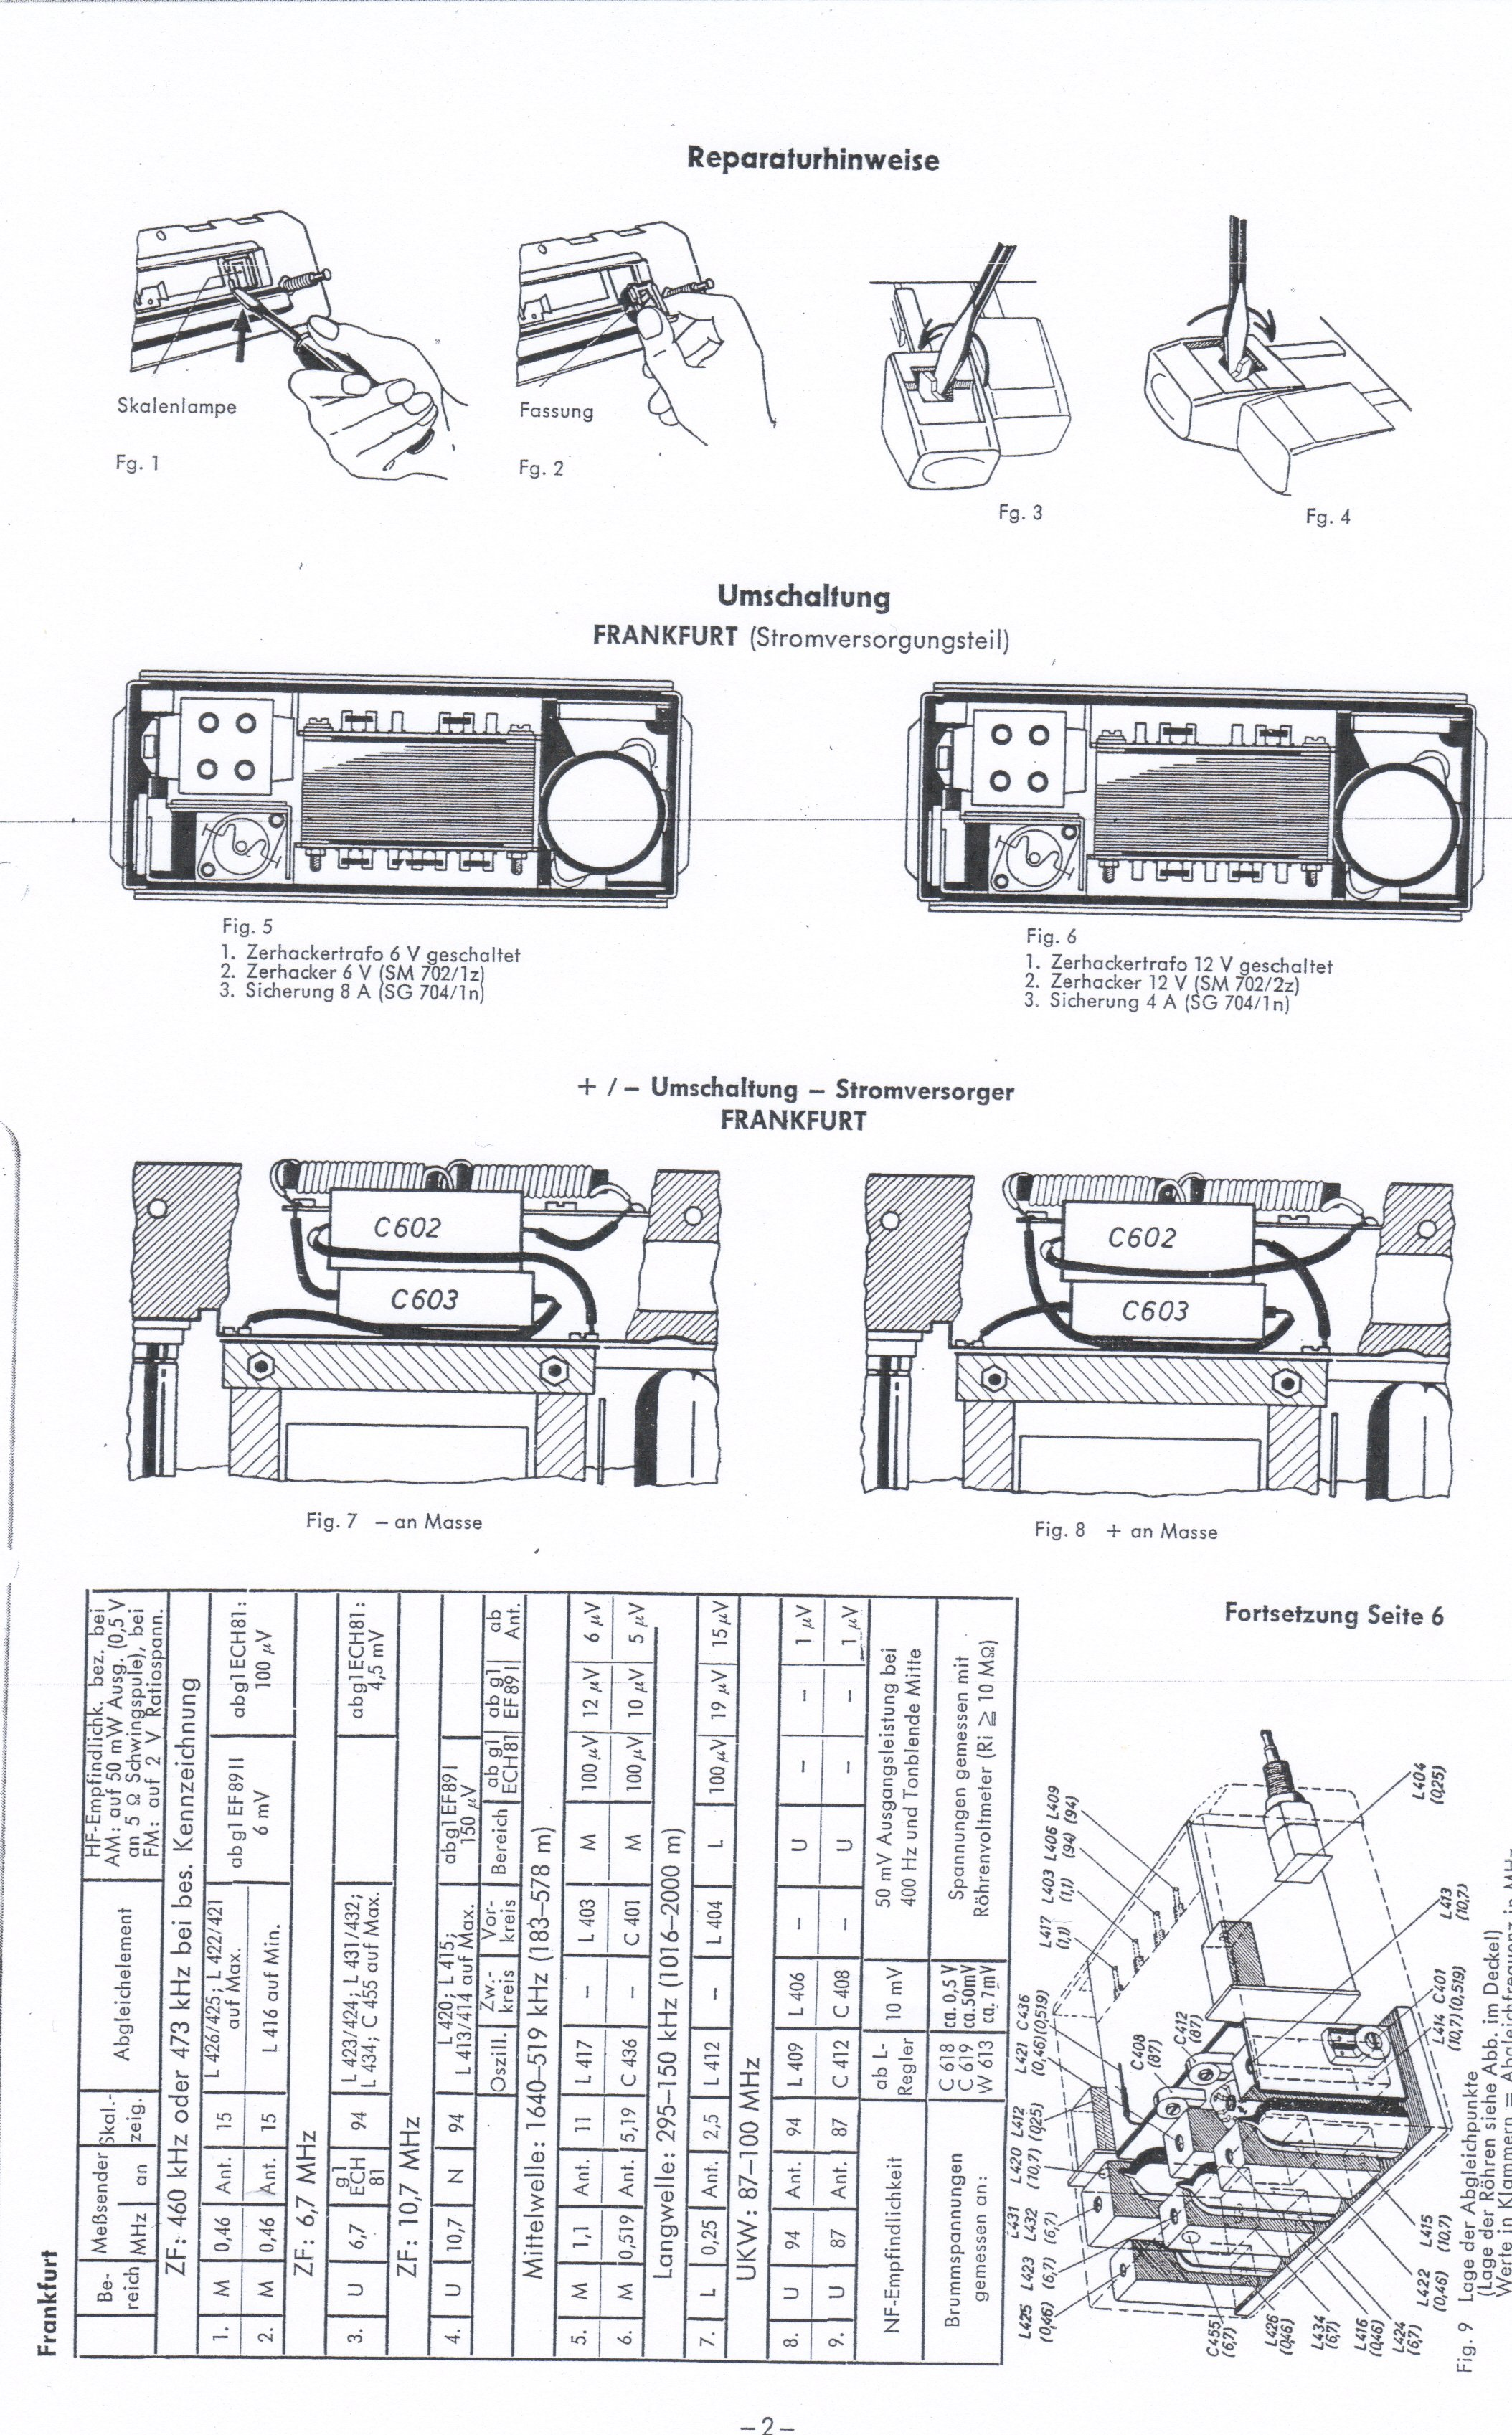 Stereo Wiring Diagram For Mercedes 1099,Wiring